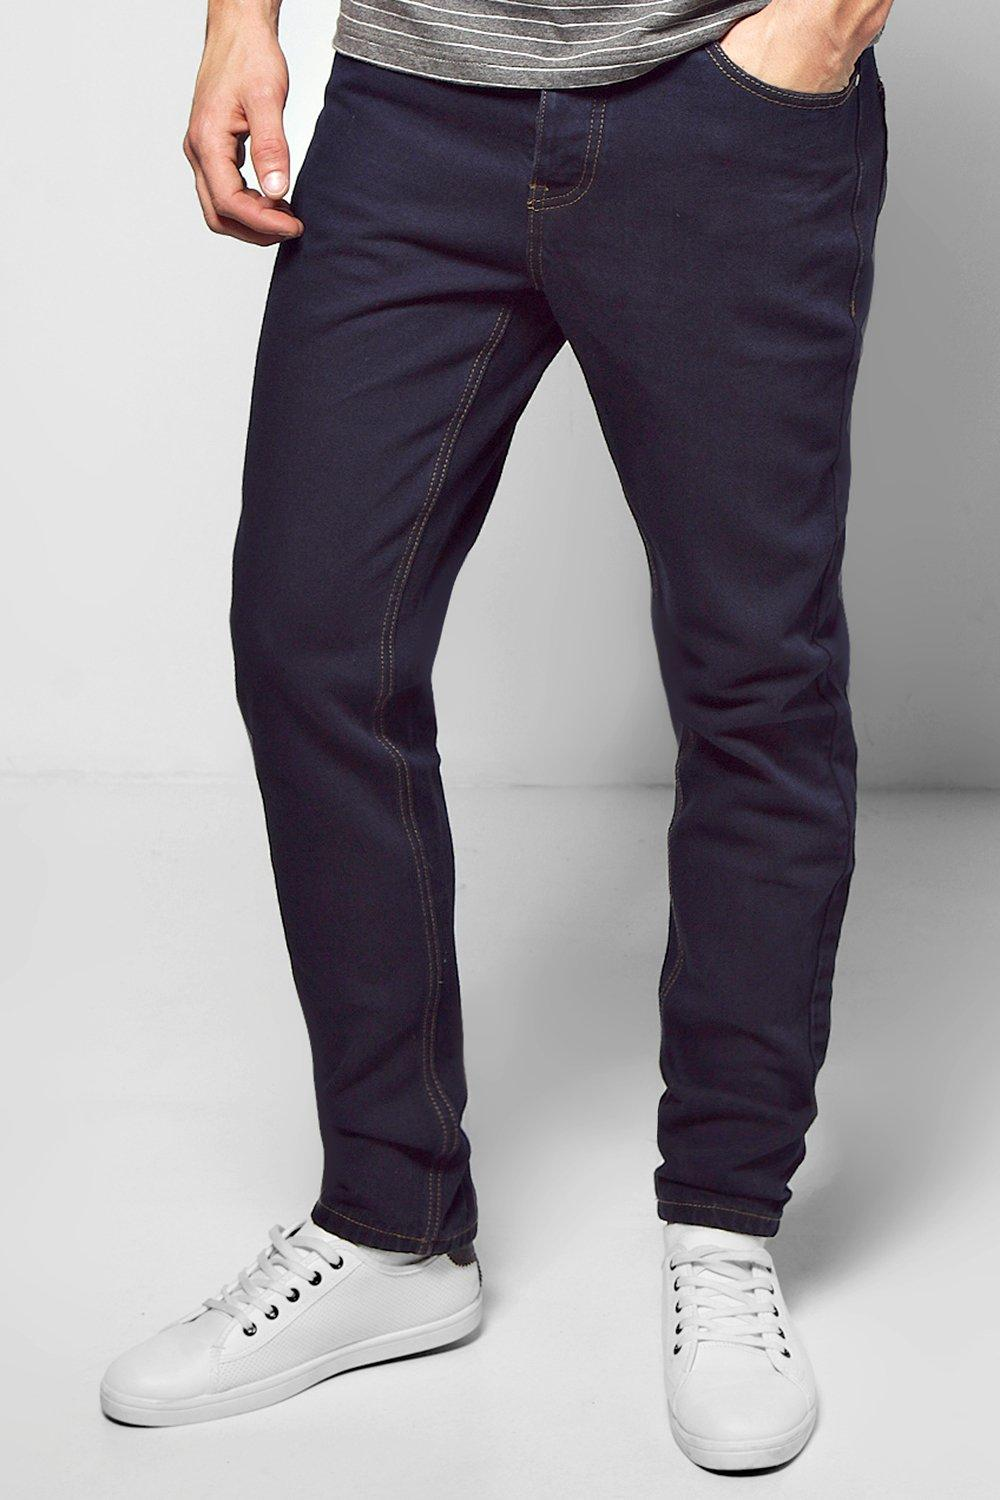 Indigo Slim Fit Rigid Jeans